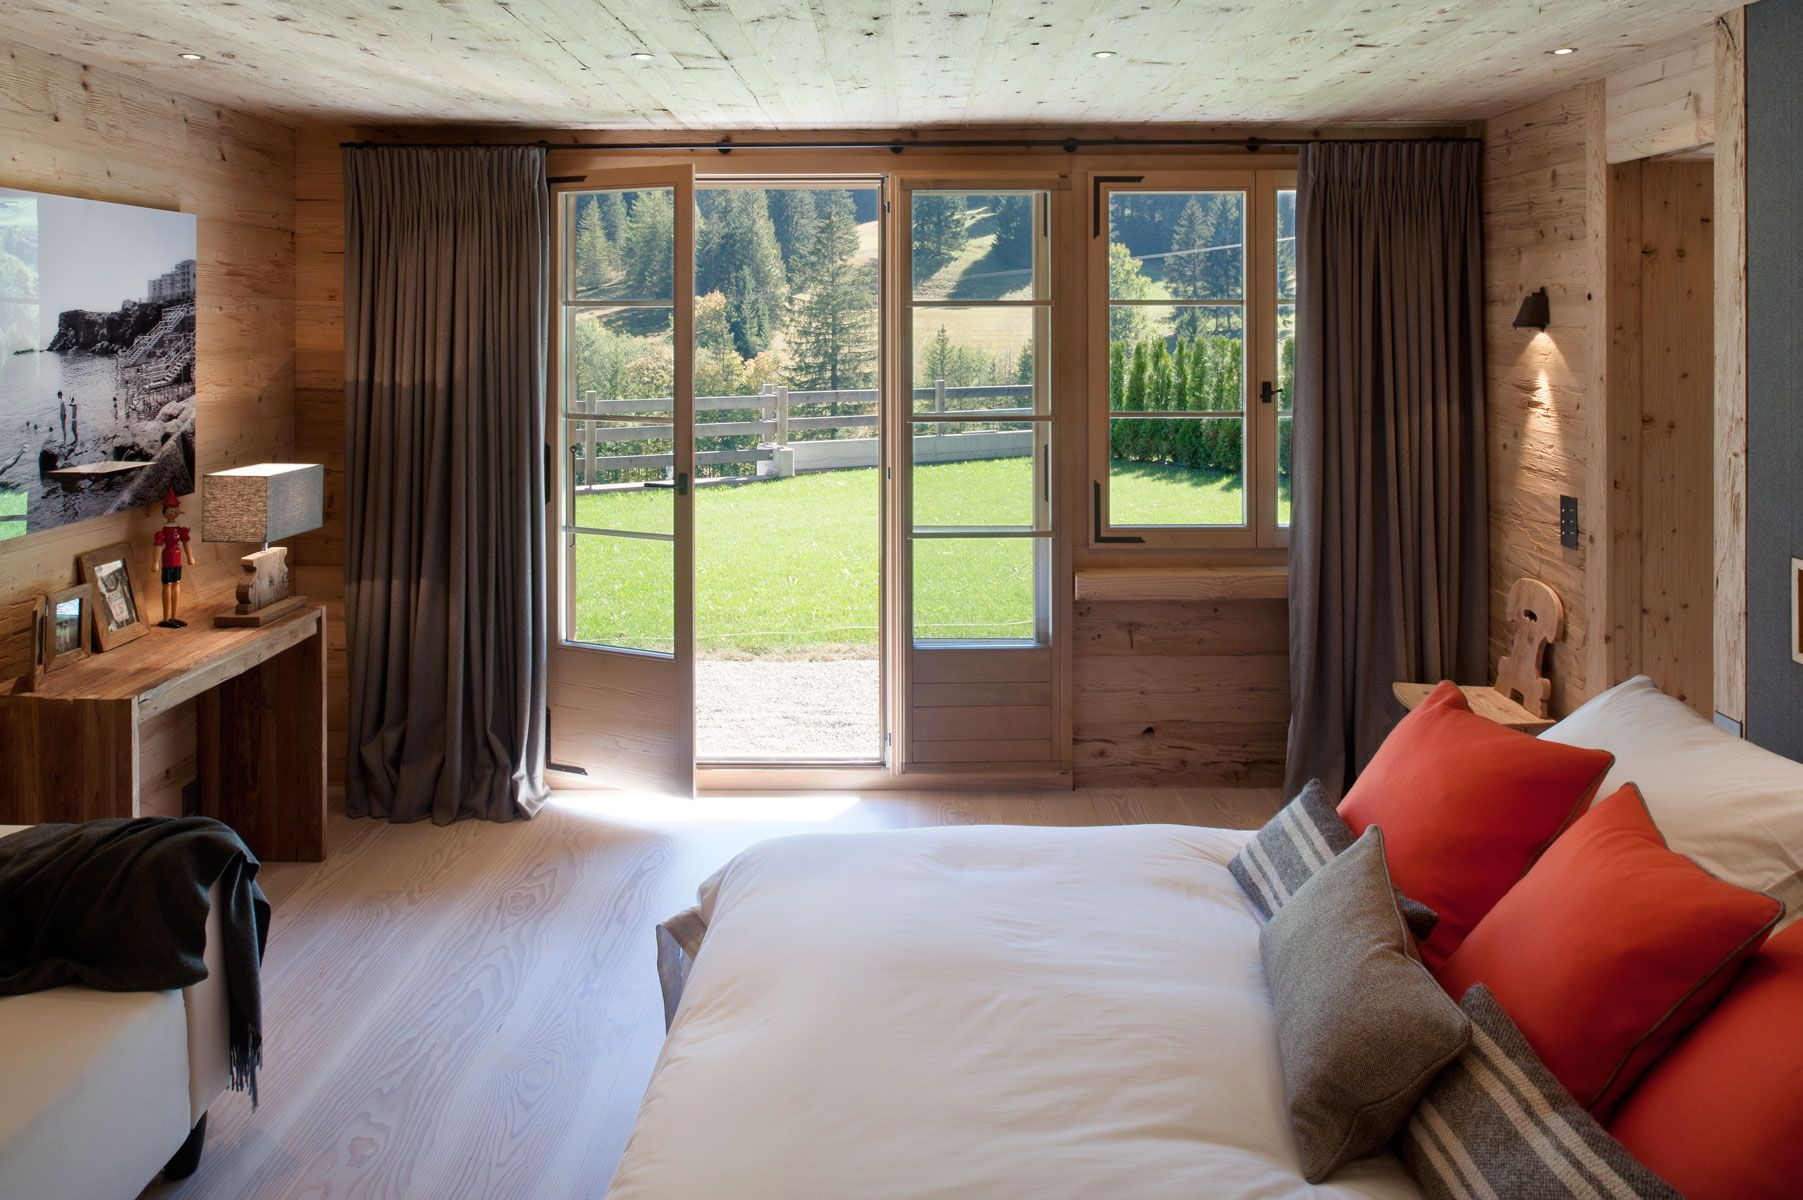 Chalet Gsteig , Switzerland #chalet #aigredoux #home #bed #linen #interior #design #bespoken